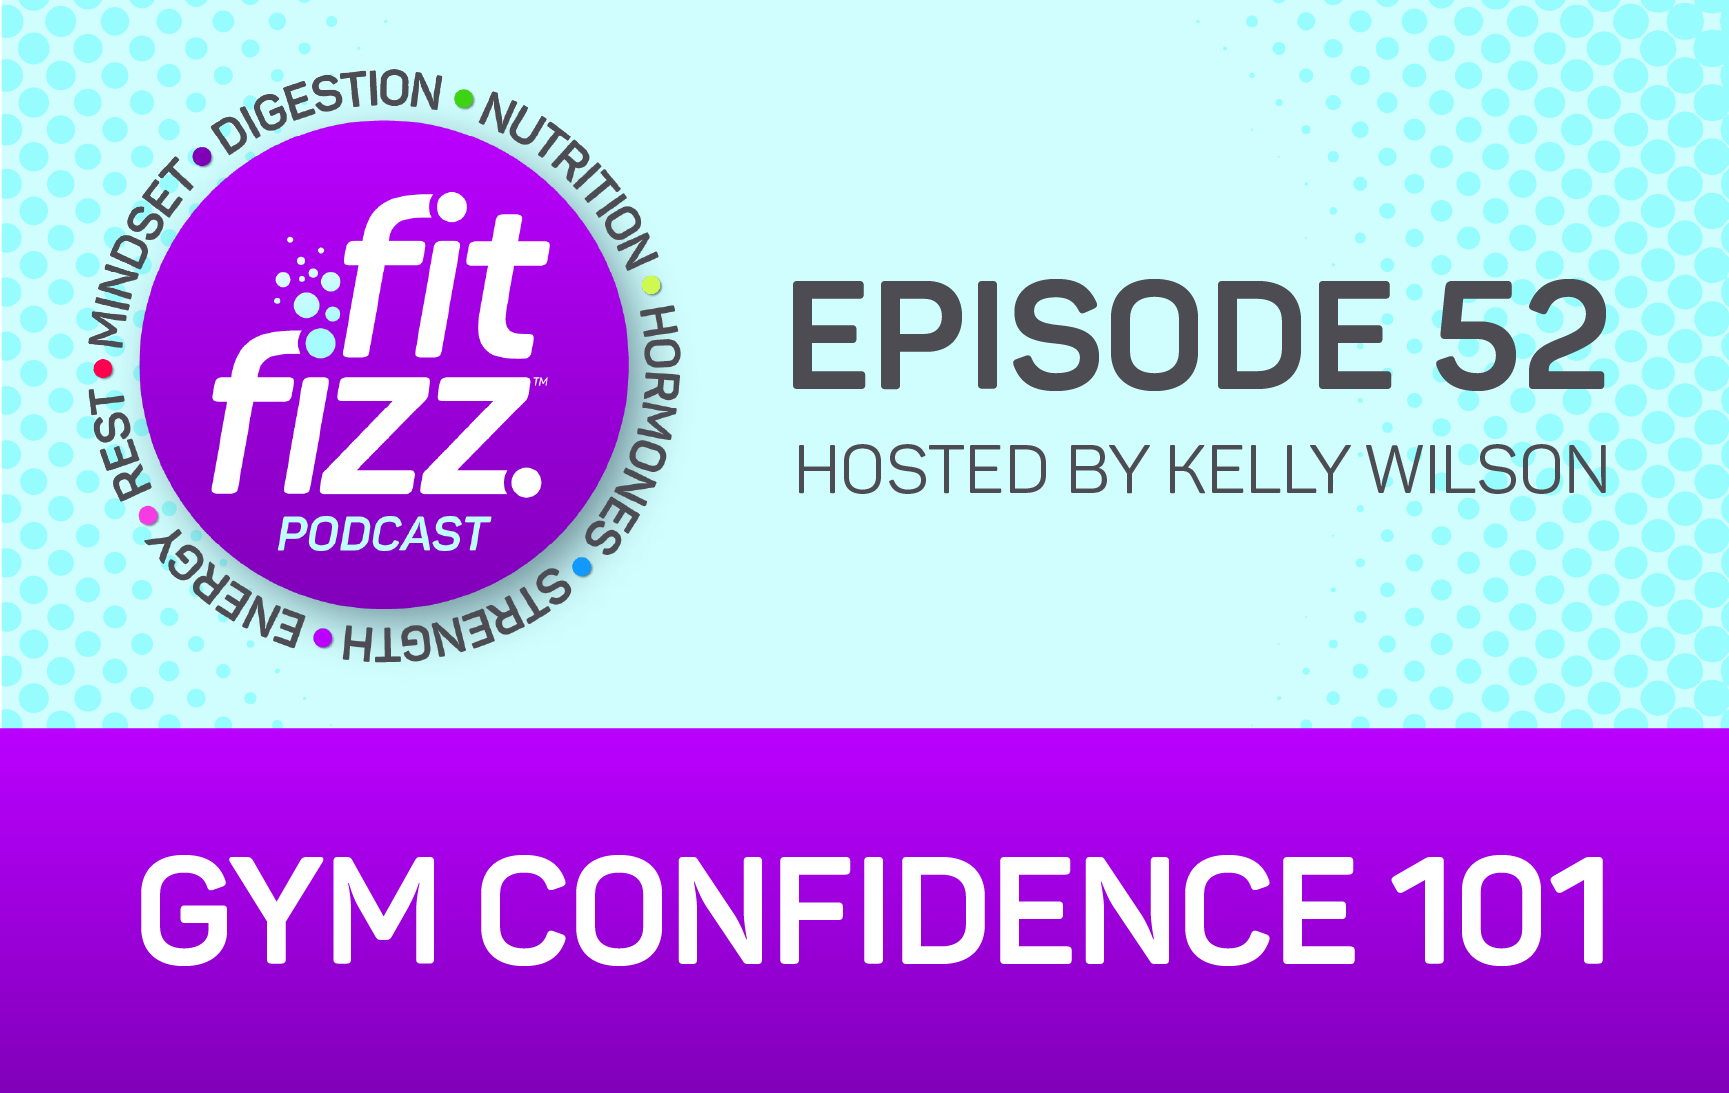 Episode 52: Gym Confidence 101